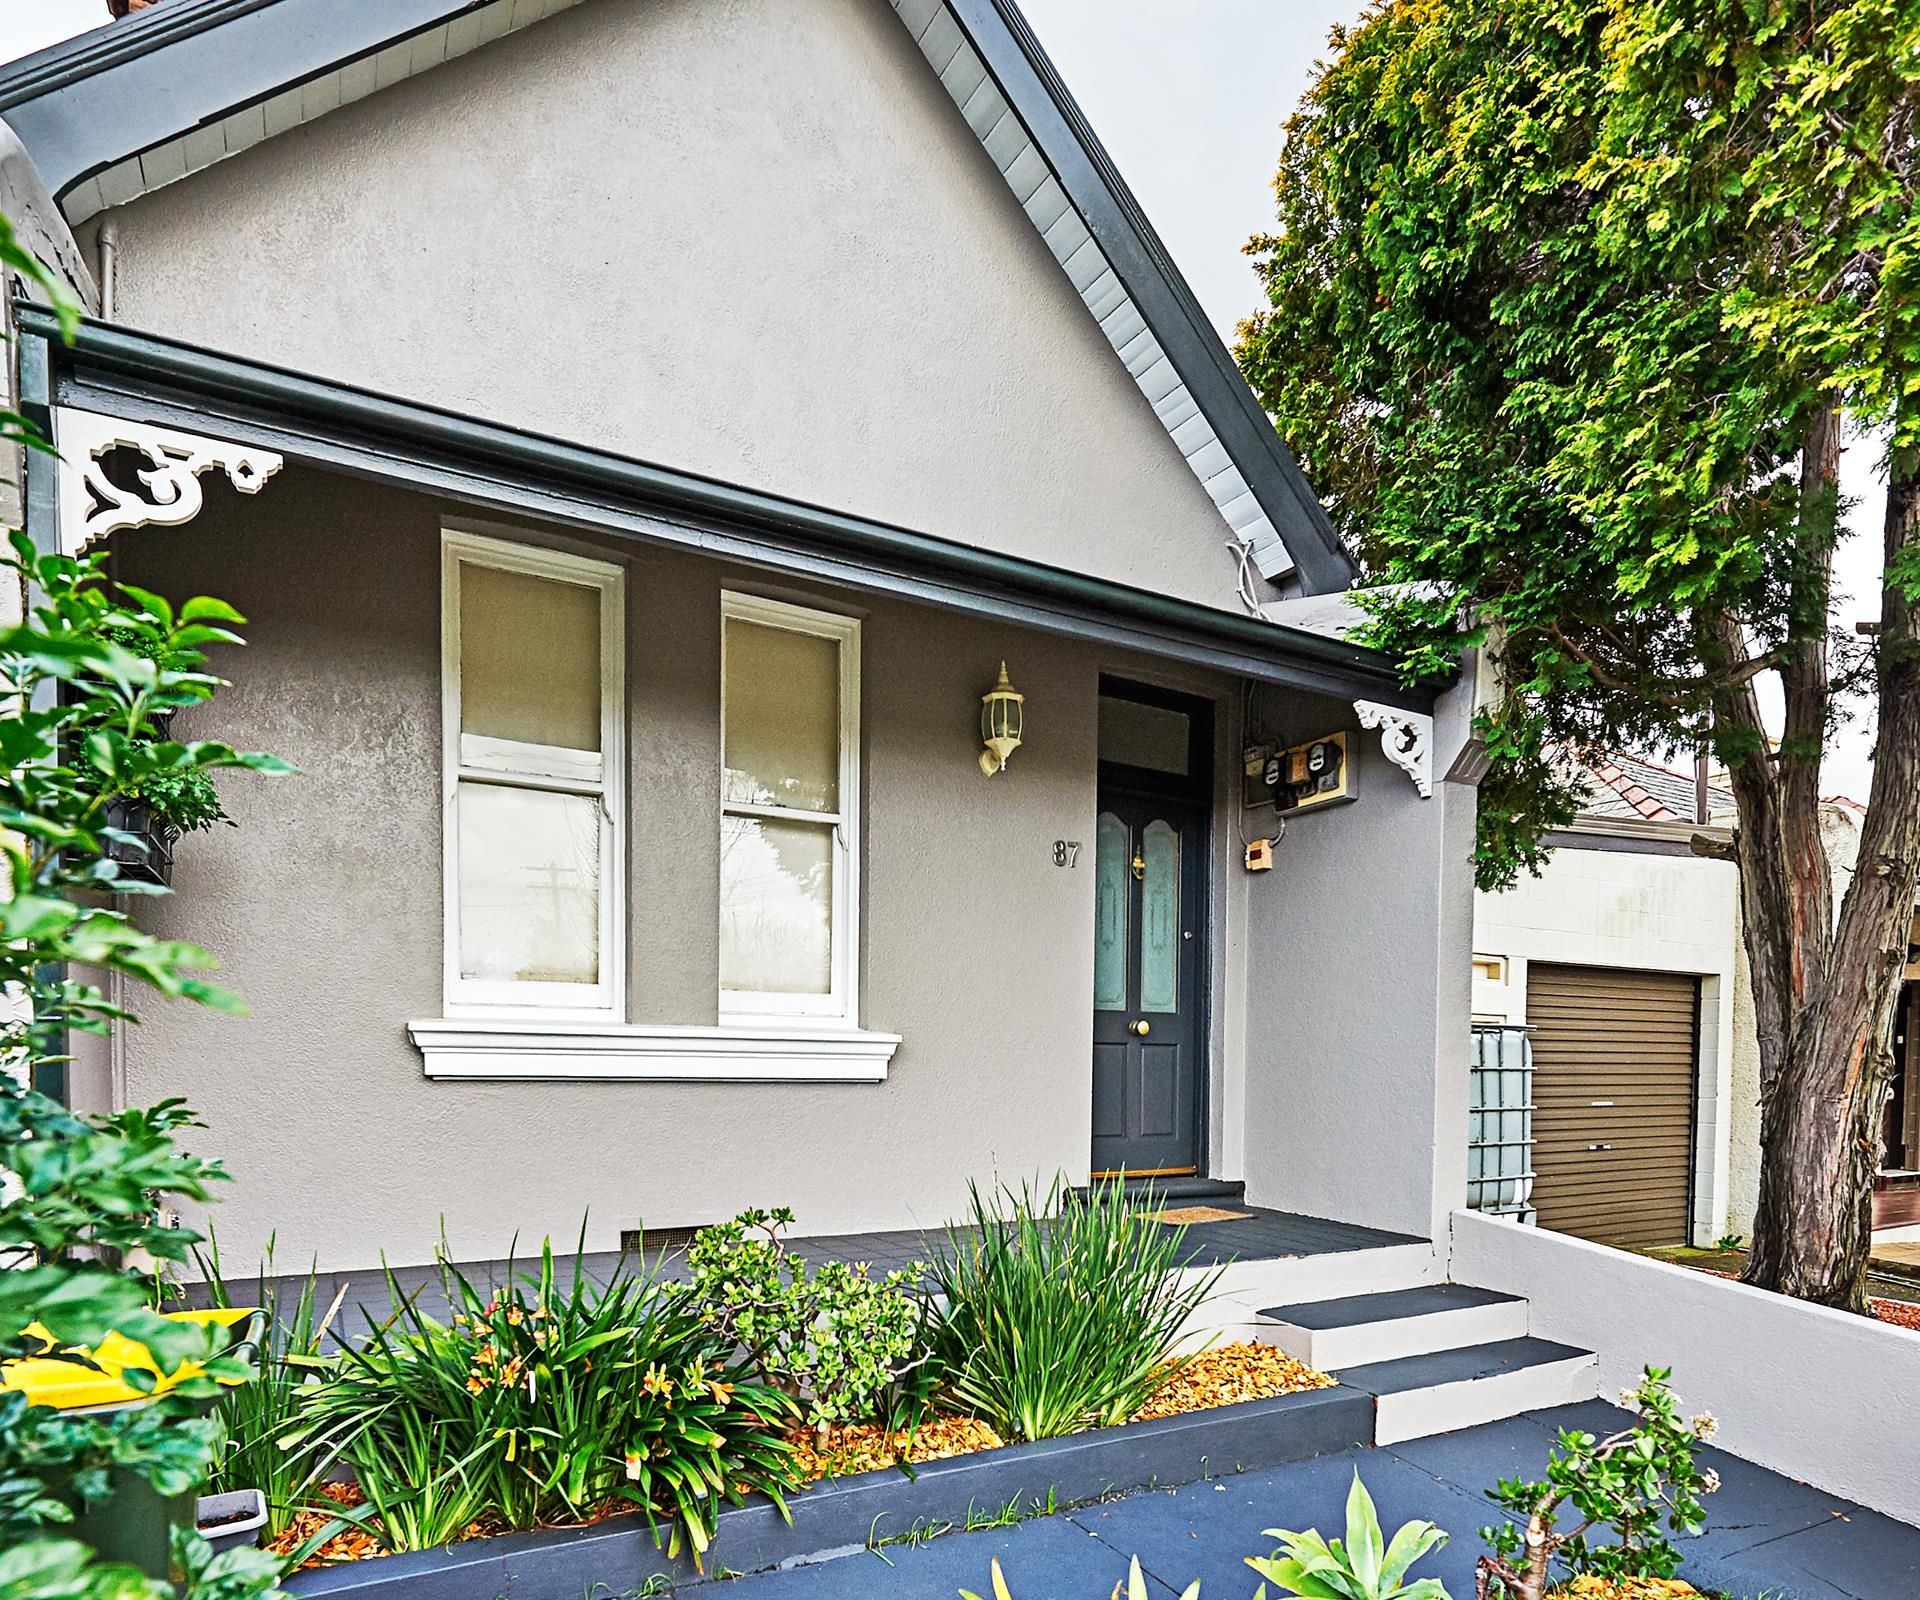 How An Exterior Makeover Could Lift Your Home's Value